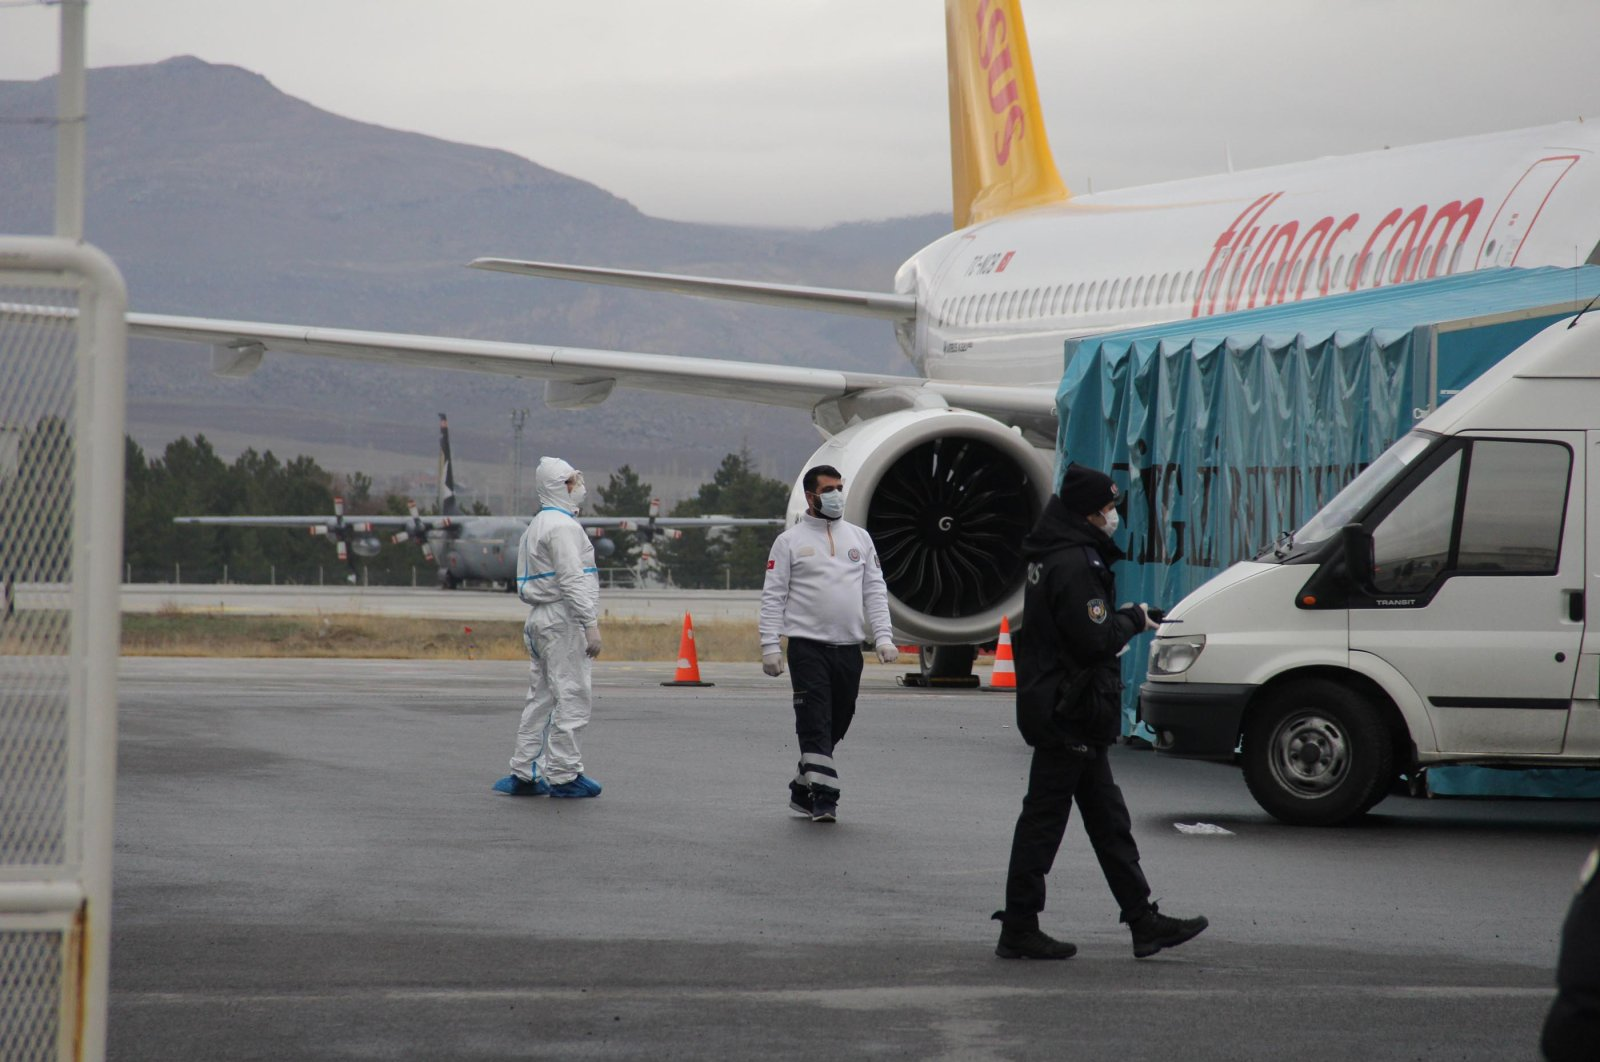 A health worker in protective suit stands near a parked Pegasus Airlines plane in Kayseri, Turkey, March 16, 2020. (DHA Photo)